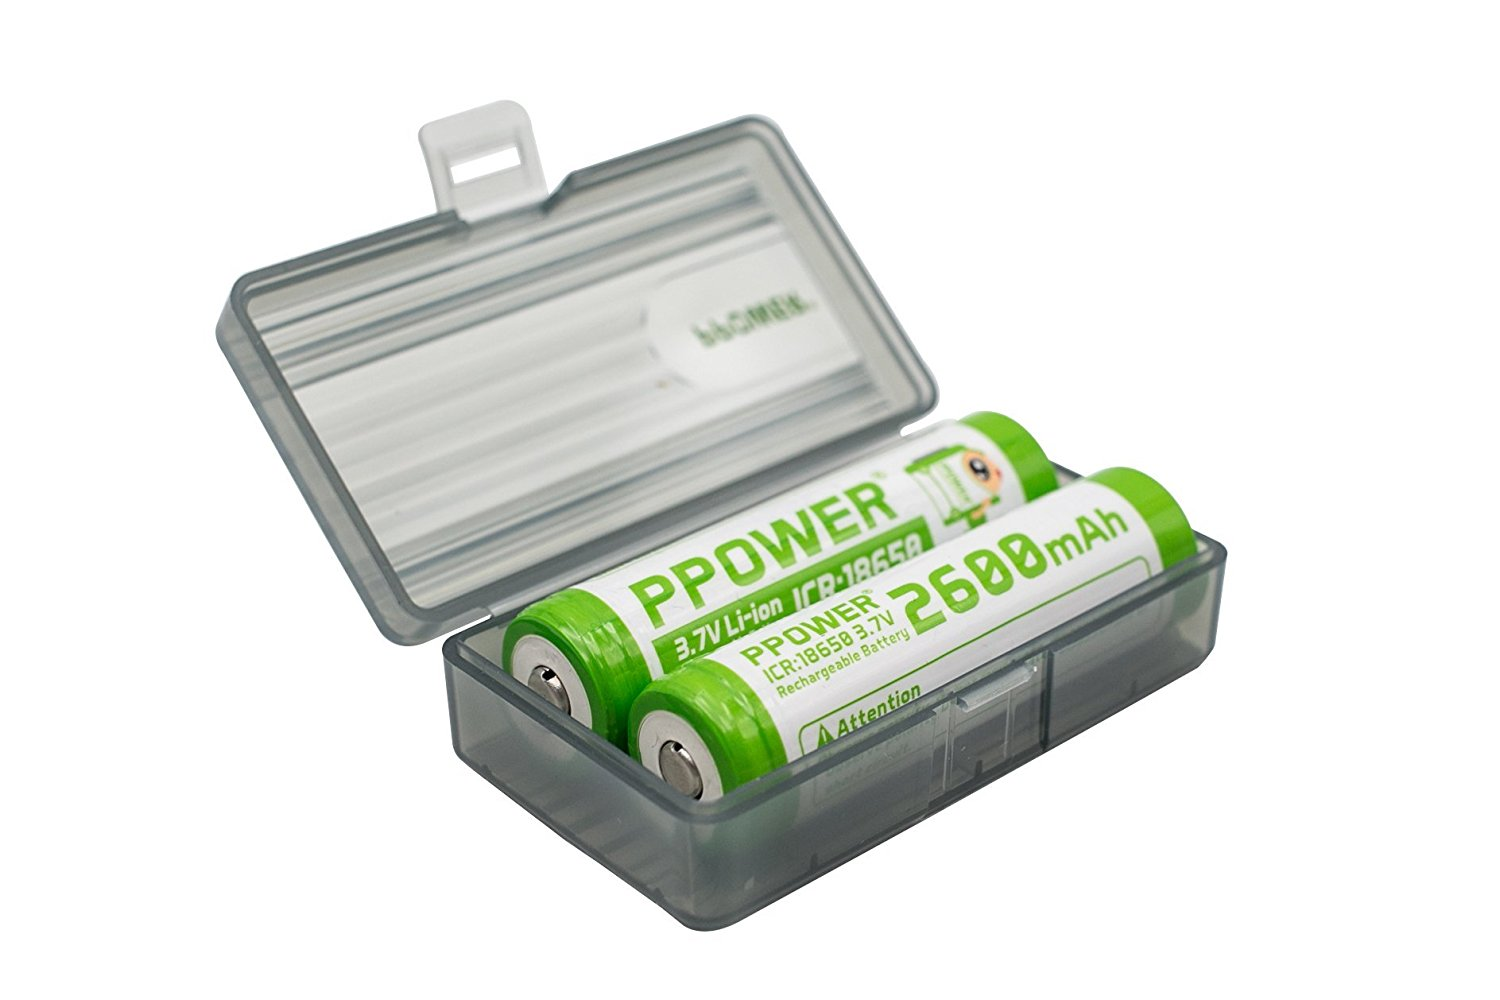 1X Ppower Grey battery box, storage box, for 2x 18650, 4x 16340, 17500, 17650 batteries, battery case (batteries are not included) P-Power